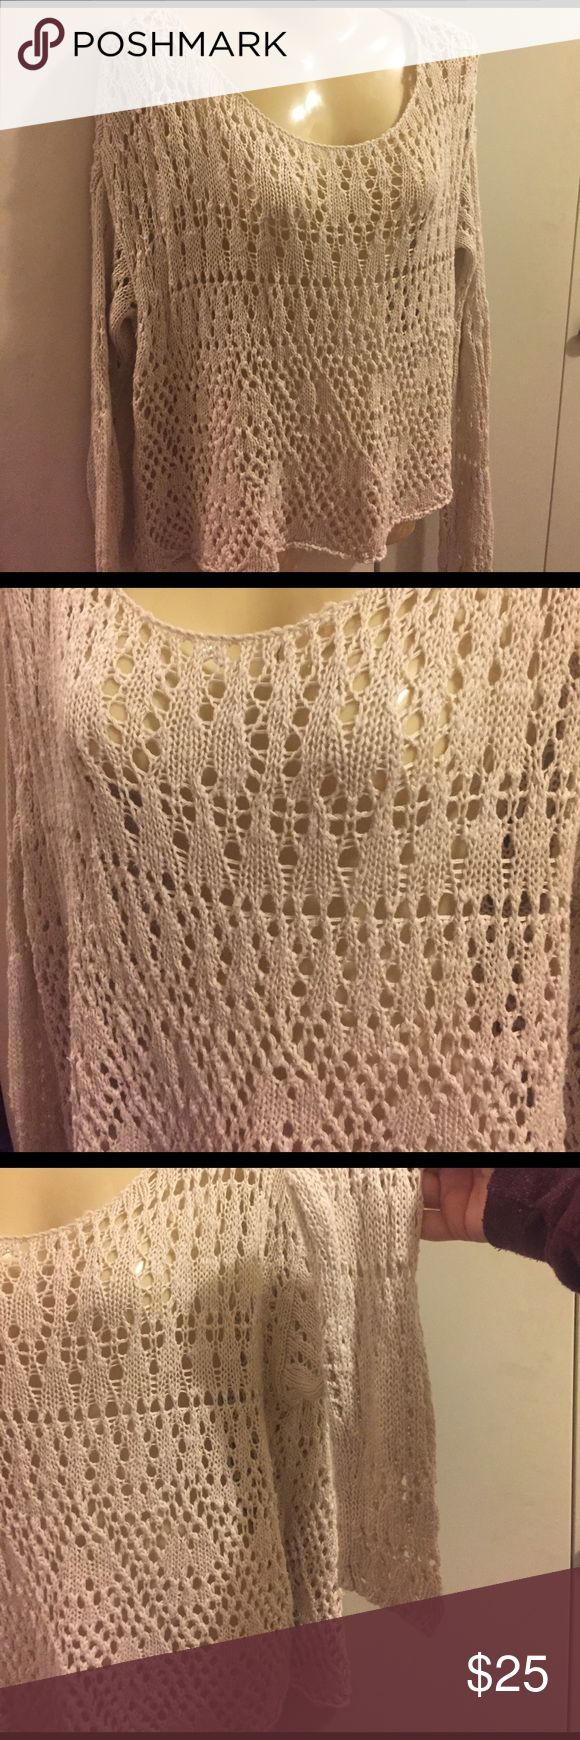 A&F loose knit sweater Beige colored loose knit sweater from Abercrombie & Fitch. Size M/L but would fit a medium best (a&f runs small) Abercrombie & Fitch Sweaters Crew & Scoop Necks